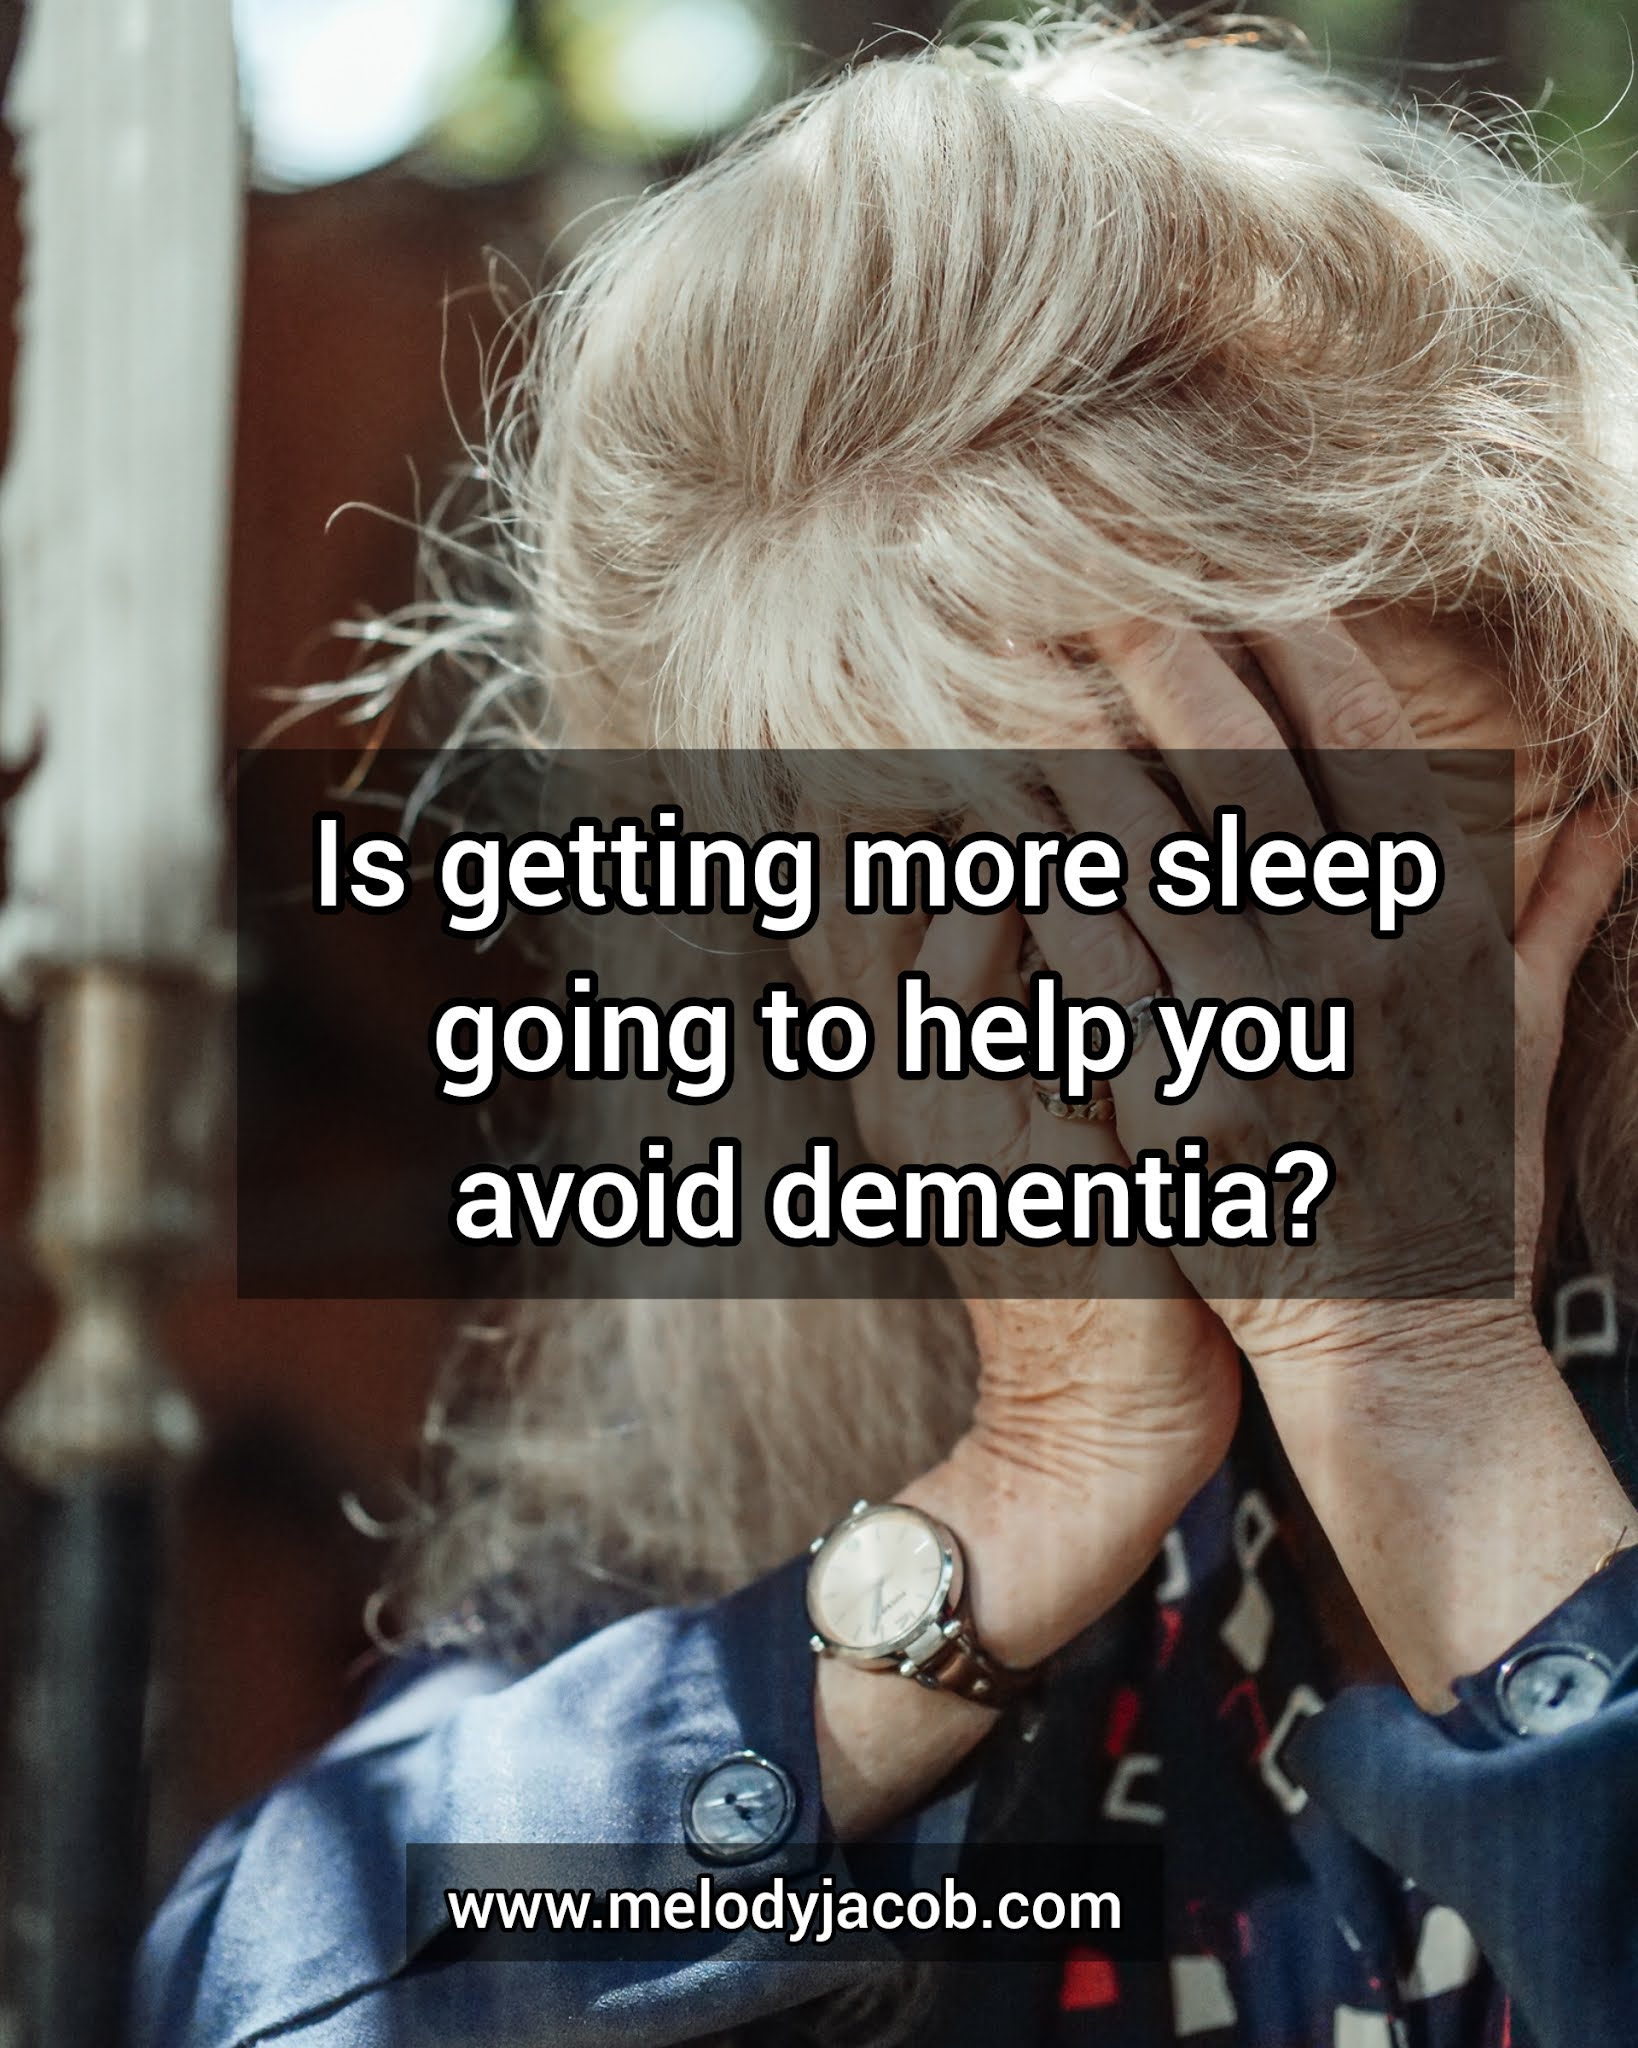 Is getting more sleep going to help me avoid dementia?